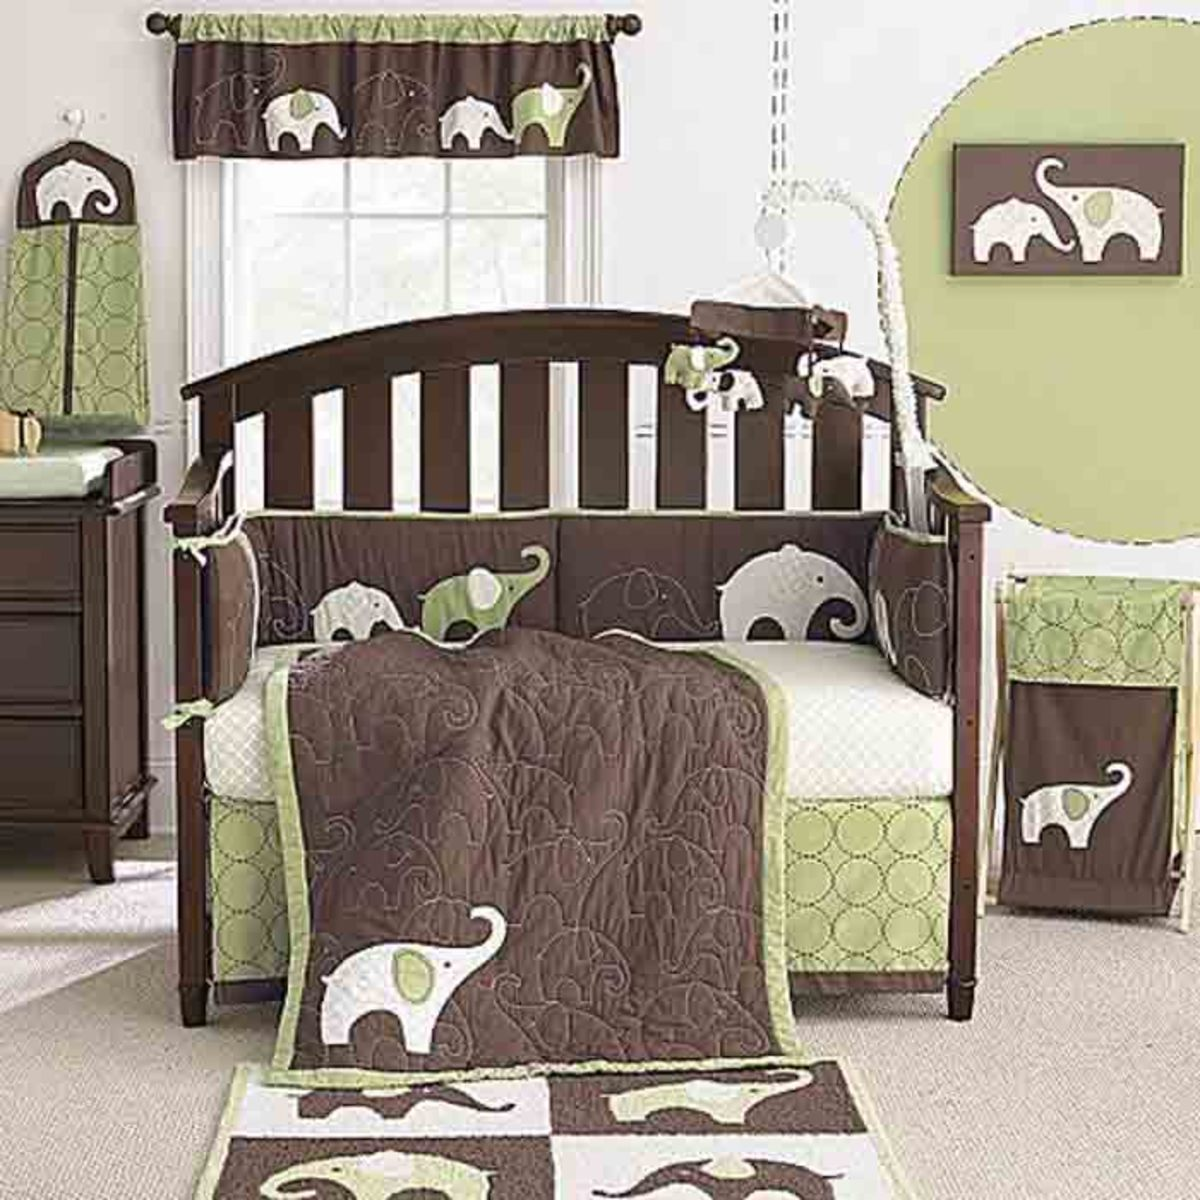 Decorating ideas for a baby boy nursery for Baby rooms decoration